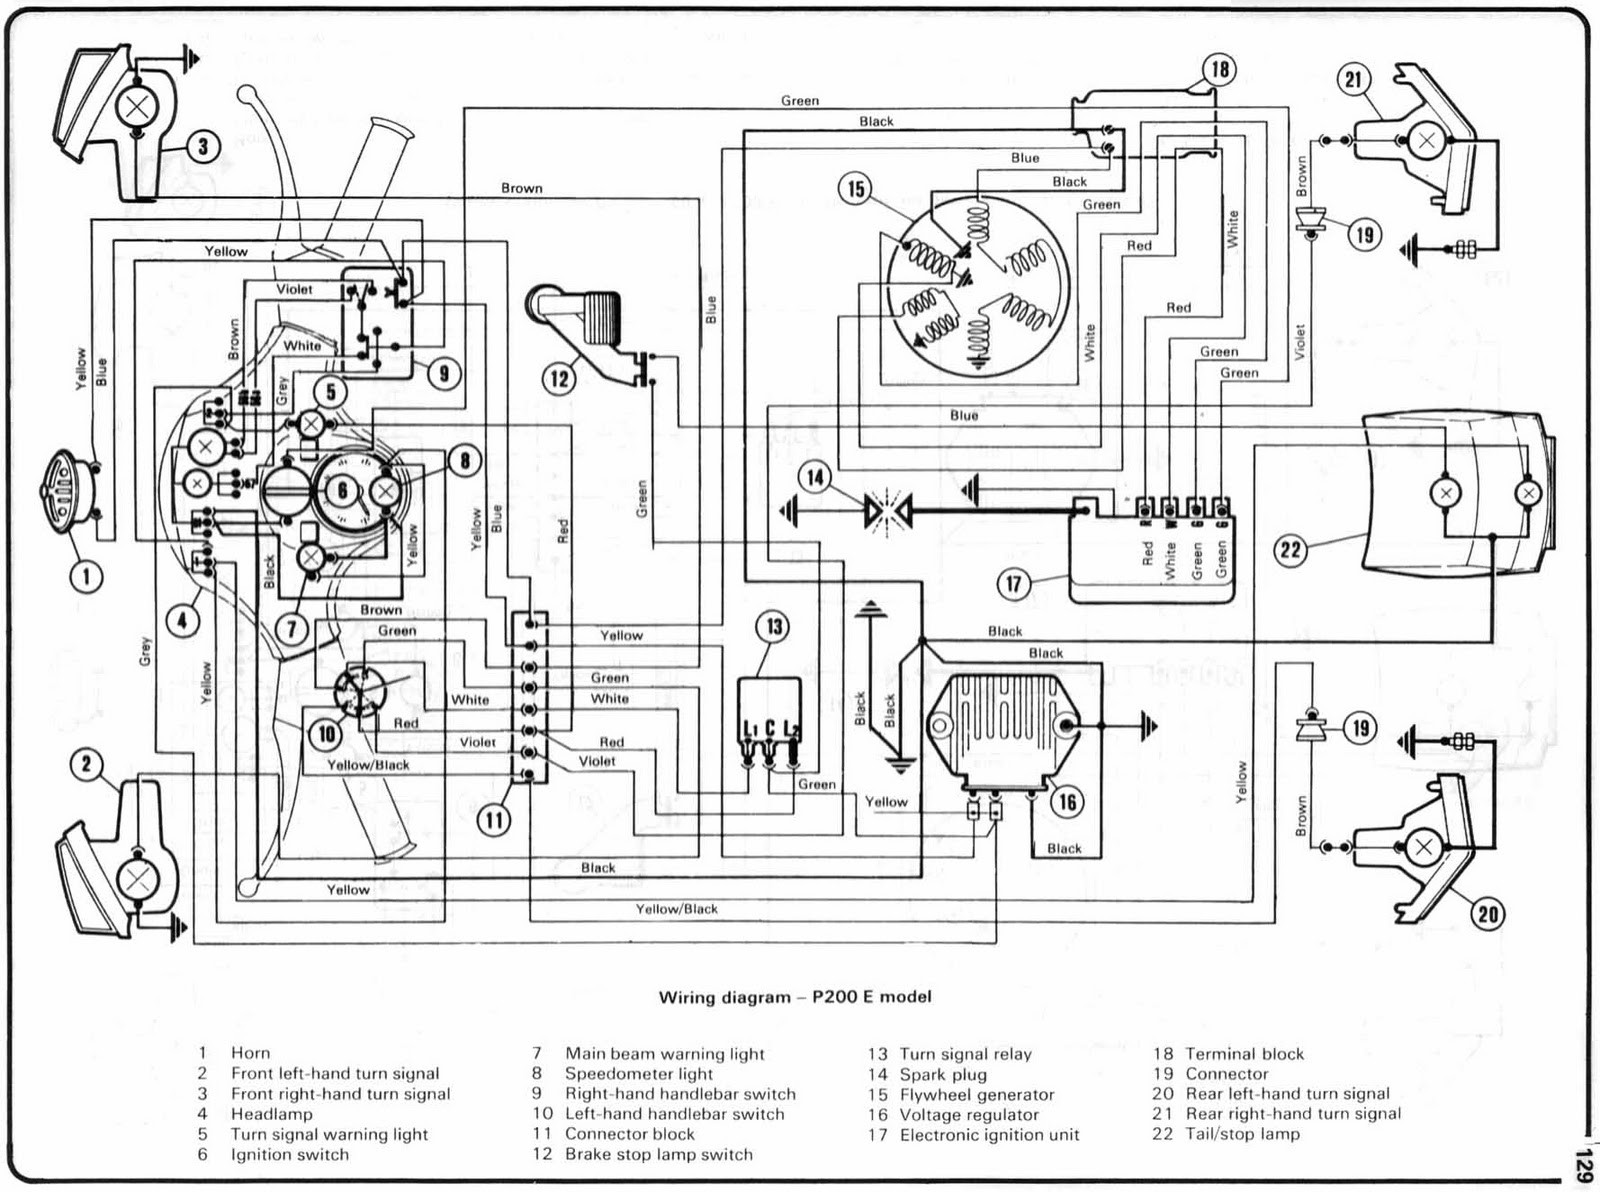 Vespa+P200+E+Model+Wiring+Diagram wiring diagrams 911 vespa p200 e model wiring diagram vespa sprint wiring diagram at cos-gaming.co